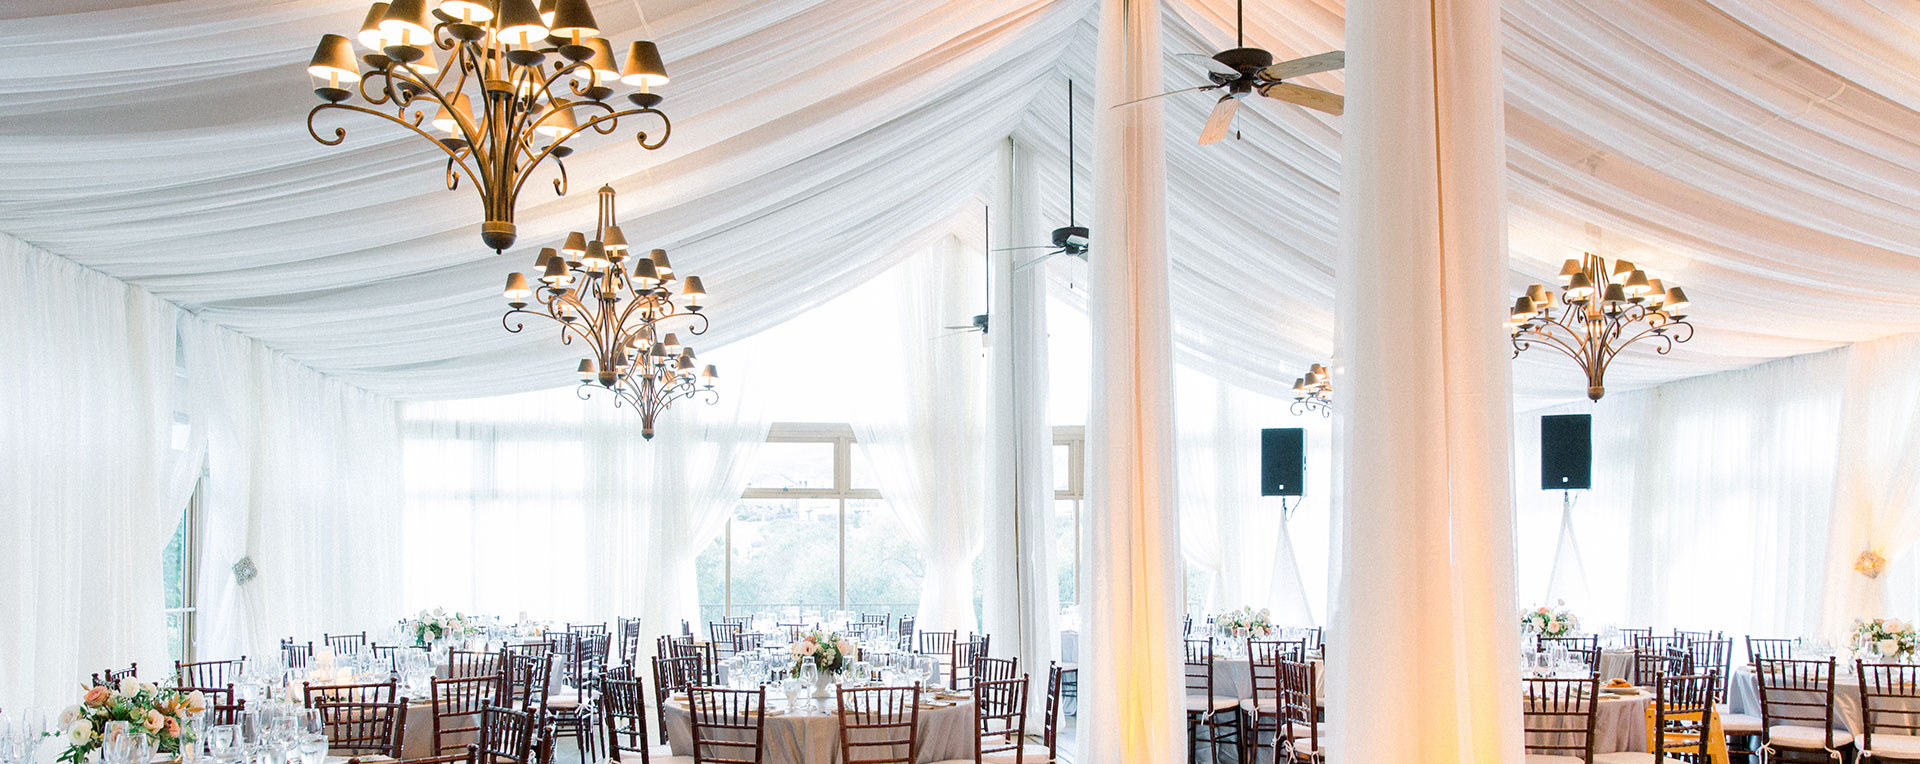 A beautiful clubhouse setup awaits its guests at Hiddenbrooke Golf Club in Vallejo